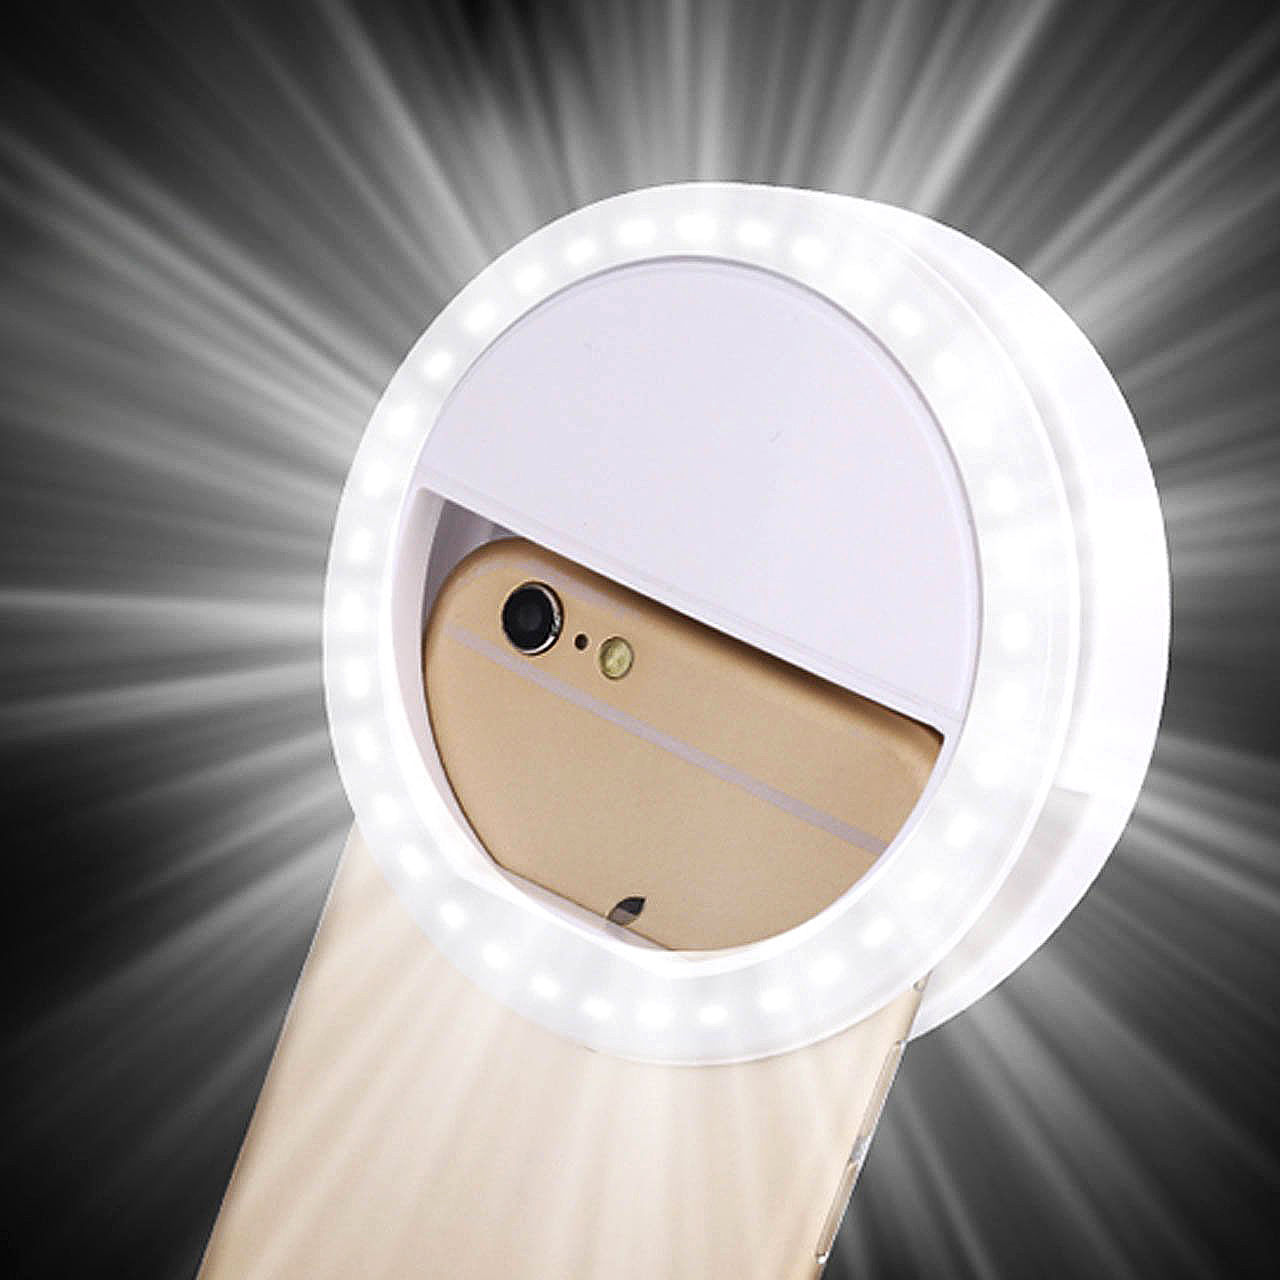 Led Lights At Walmart Ring Light For Iphone Walmart Inspirational Lighting